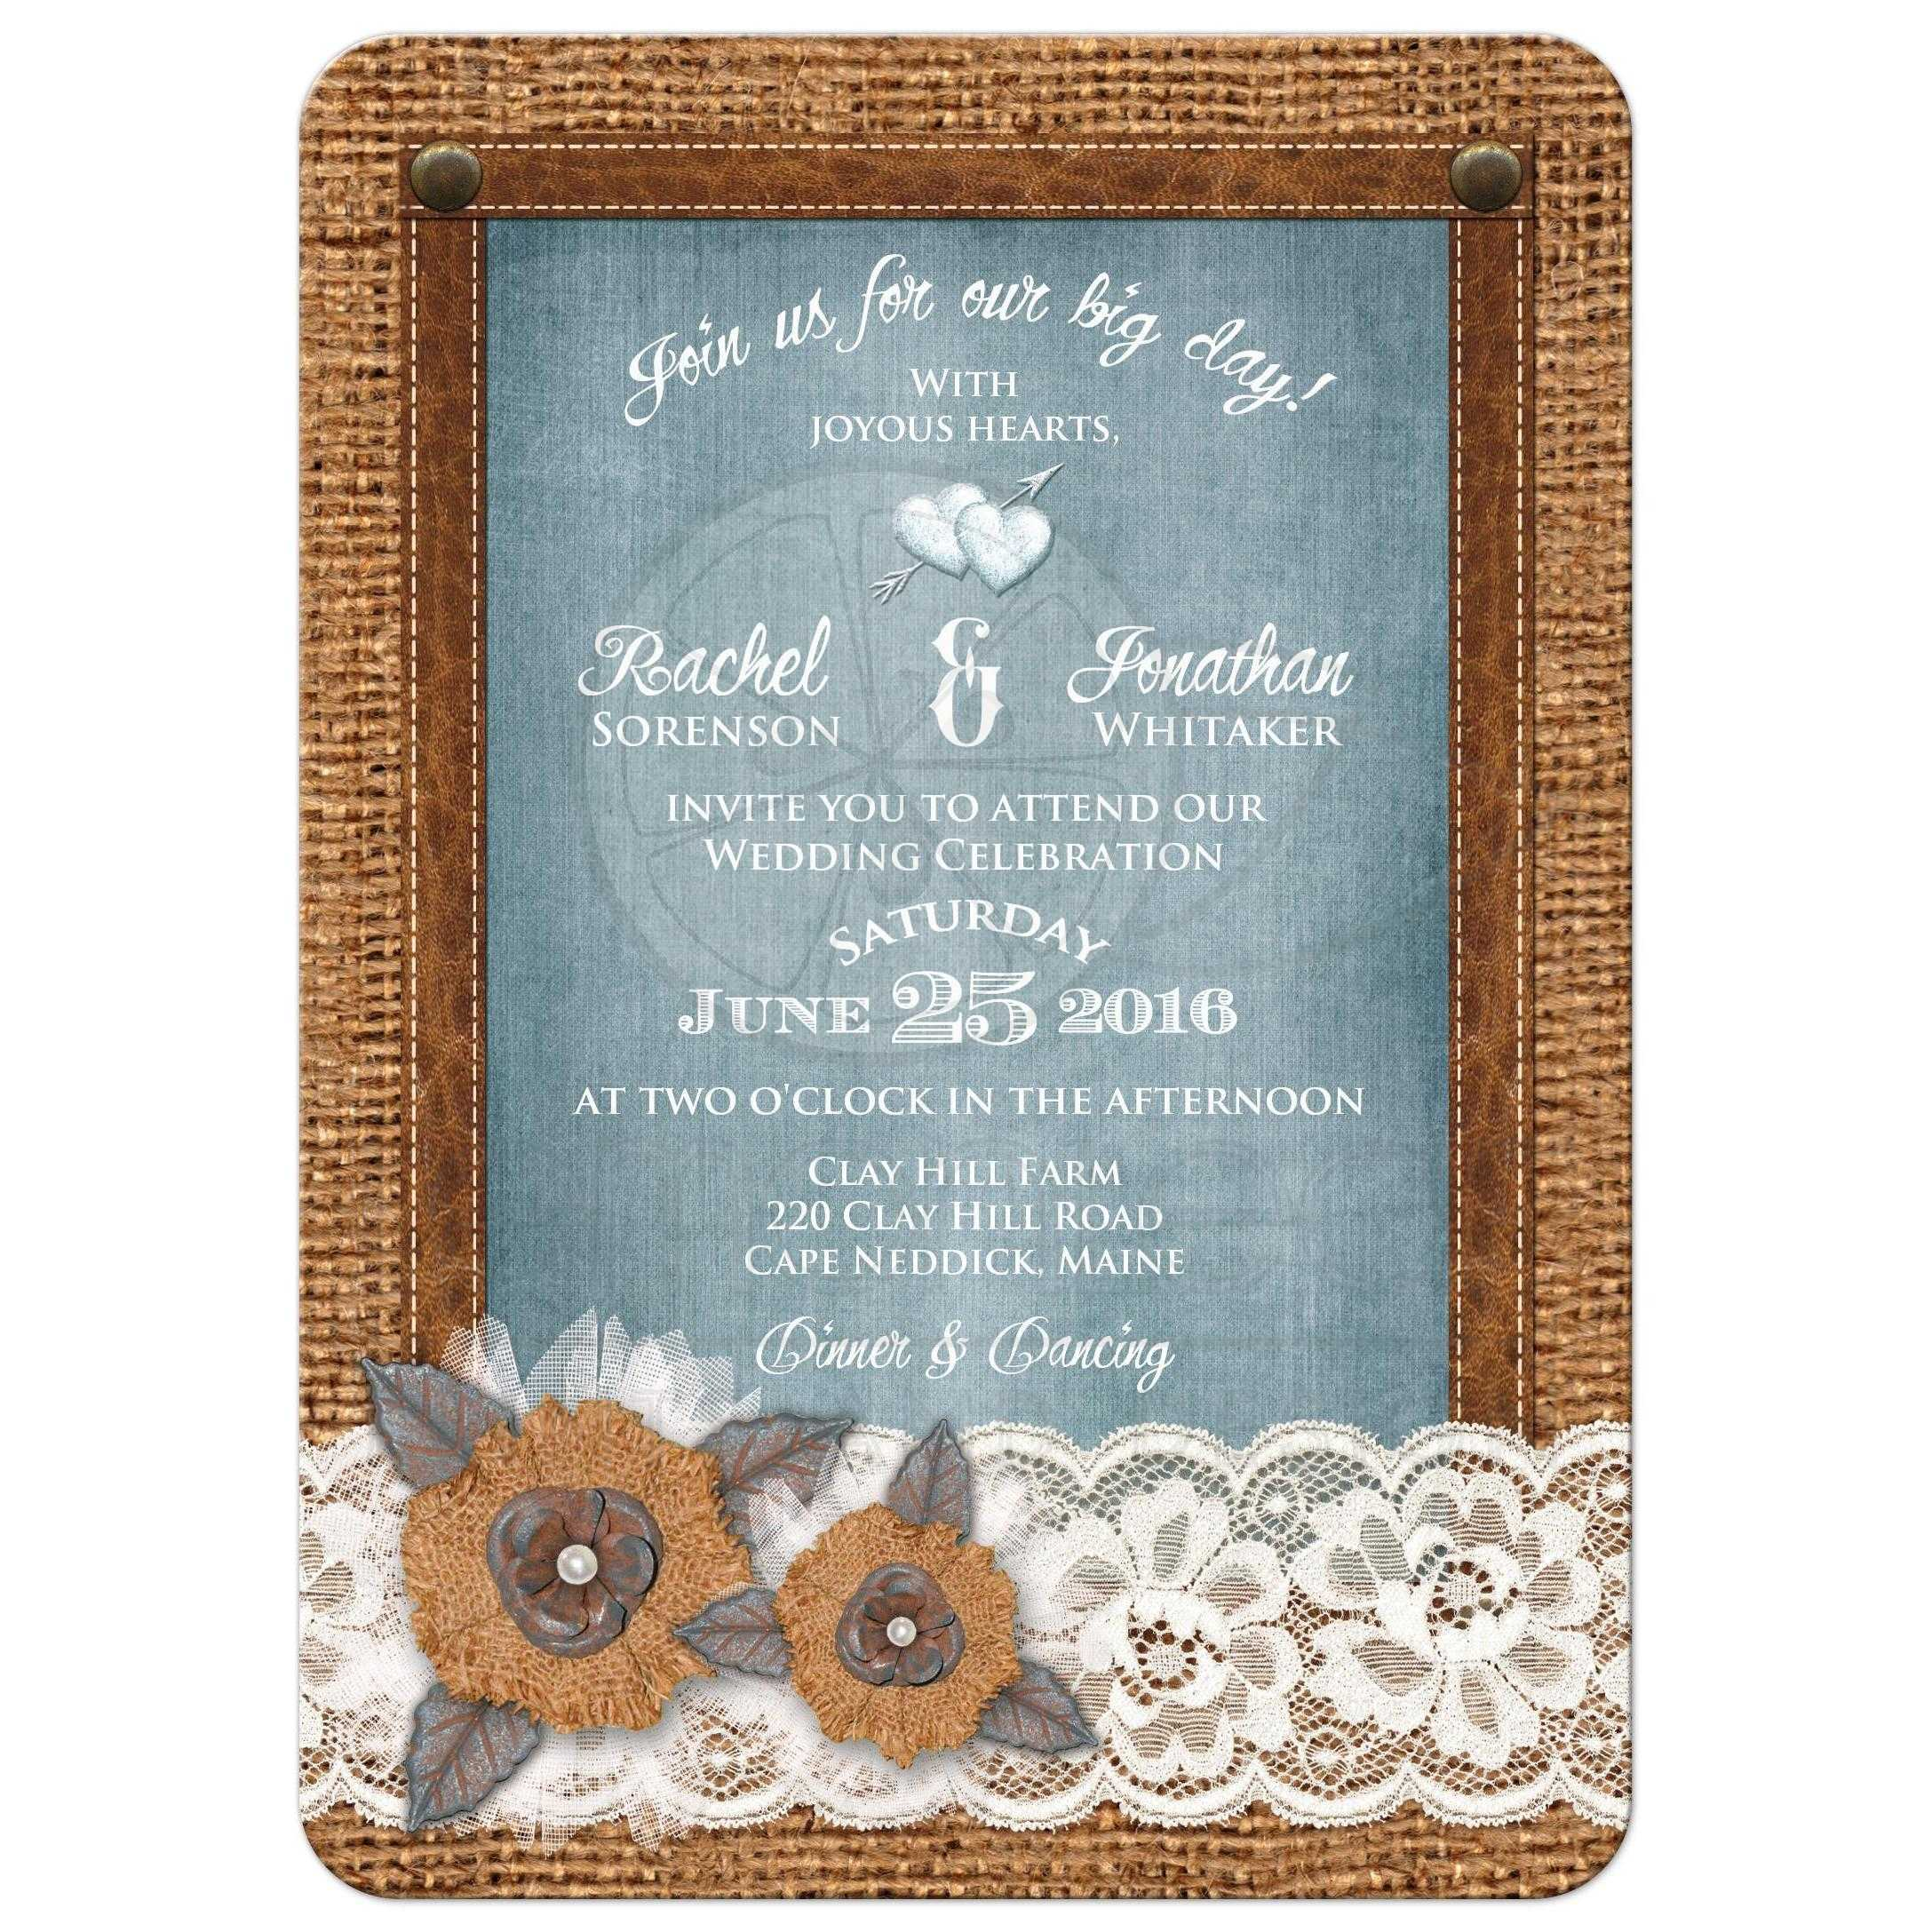 Great Rustic Country Wedding Invitation With Burlap Lace Leather Denim: Wedding Invitations With Burlap At Websimilar.org